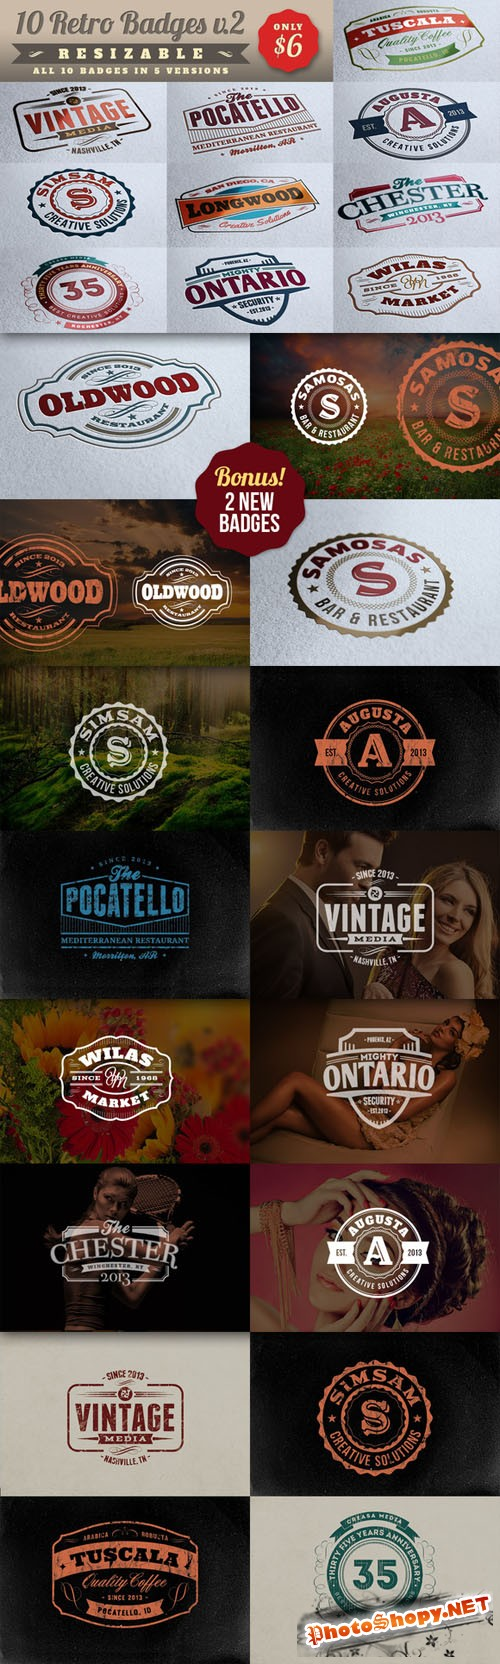 CreativeMarket - 10 Retro Signs or Badges v.2 + Bonus